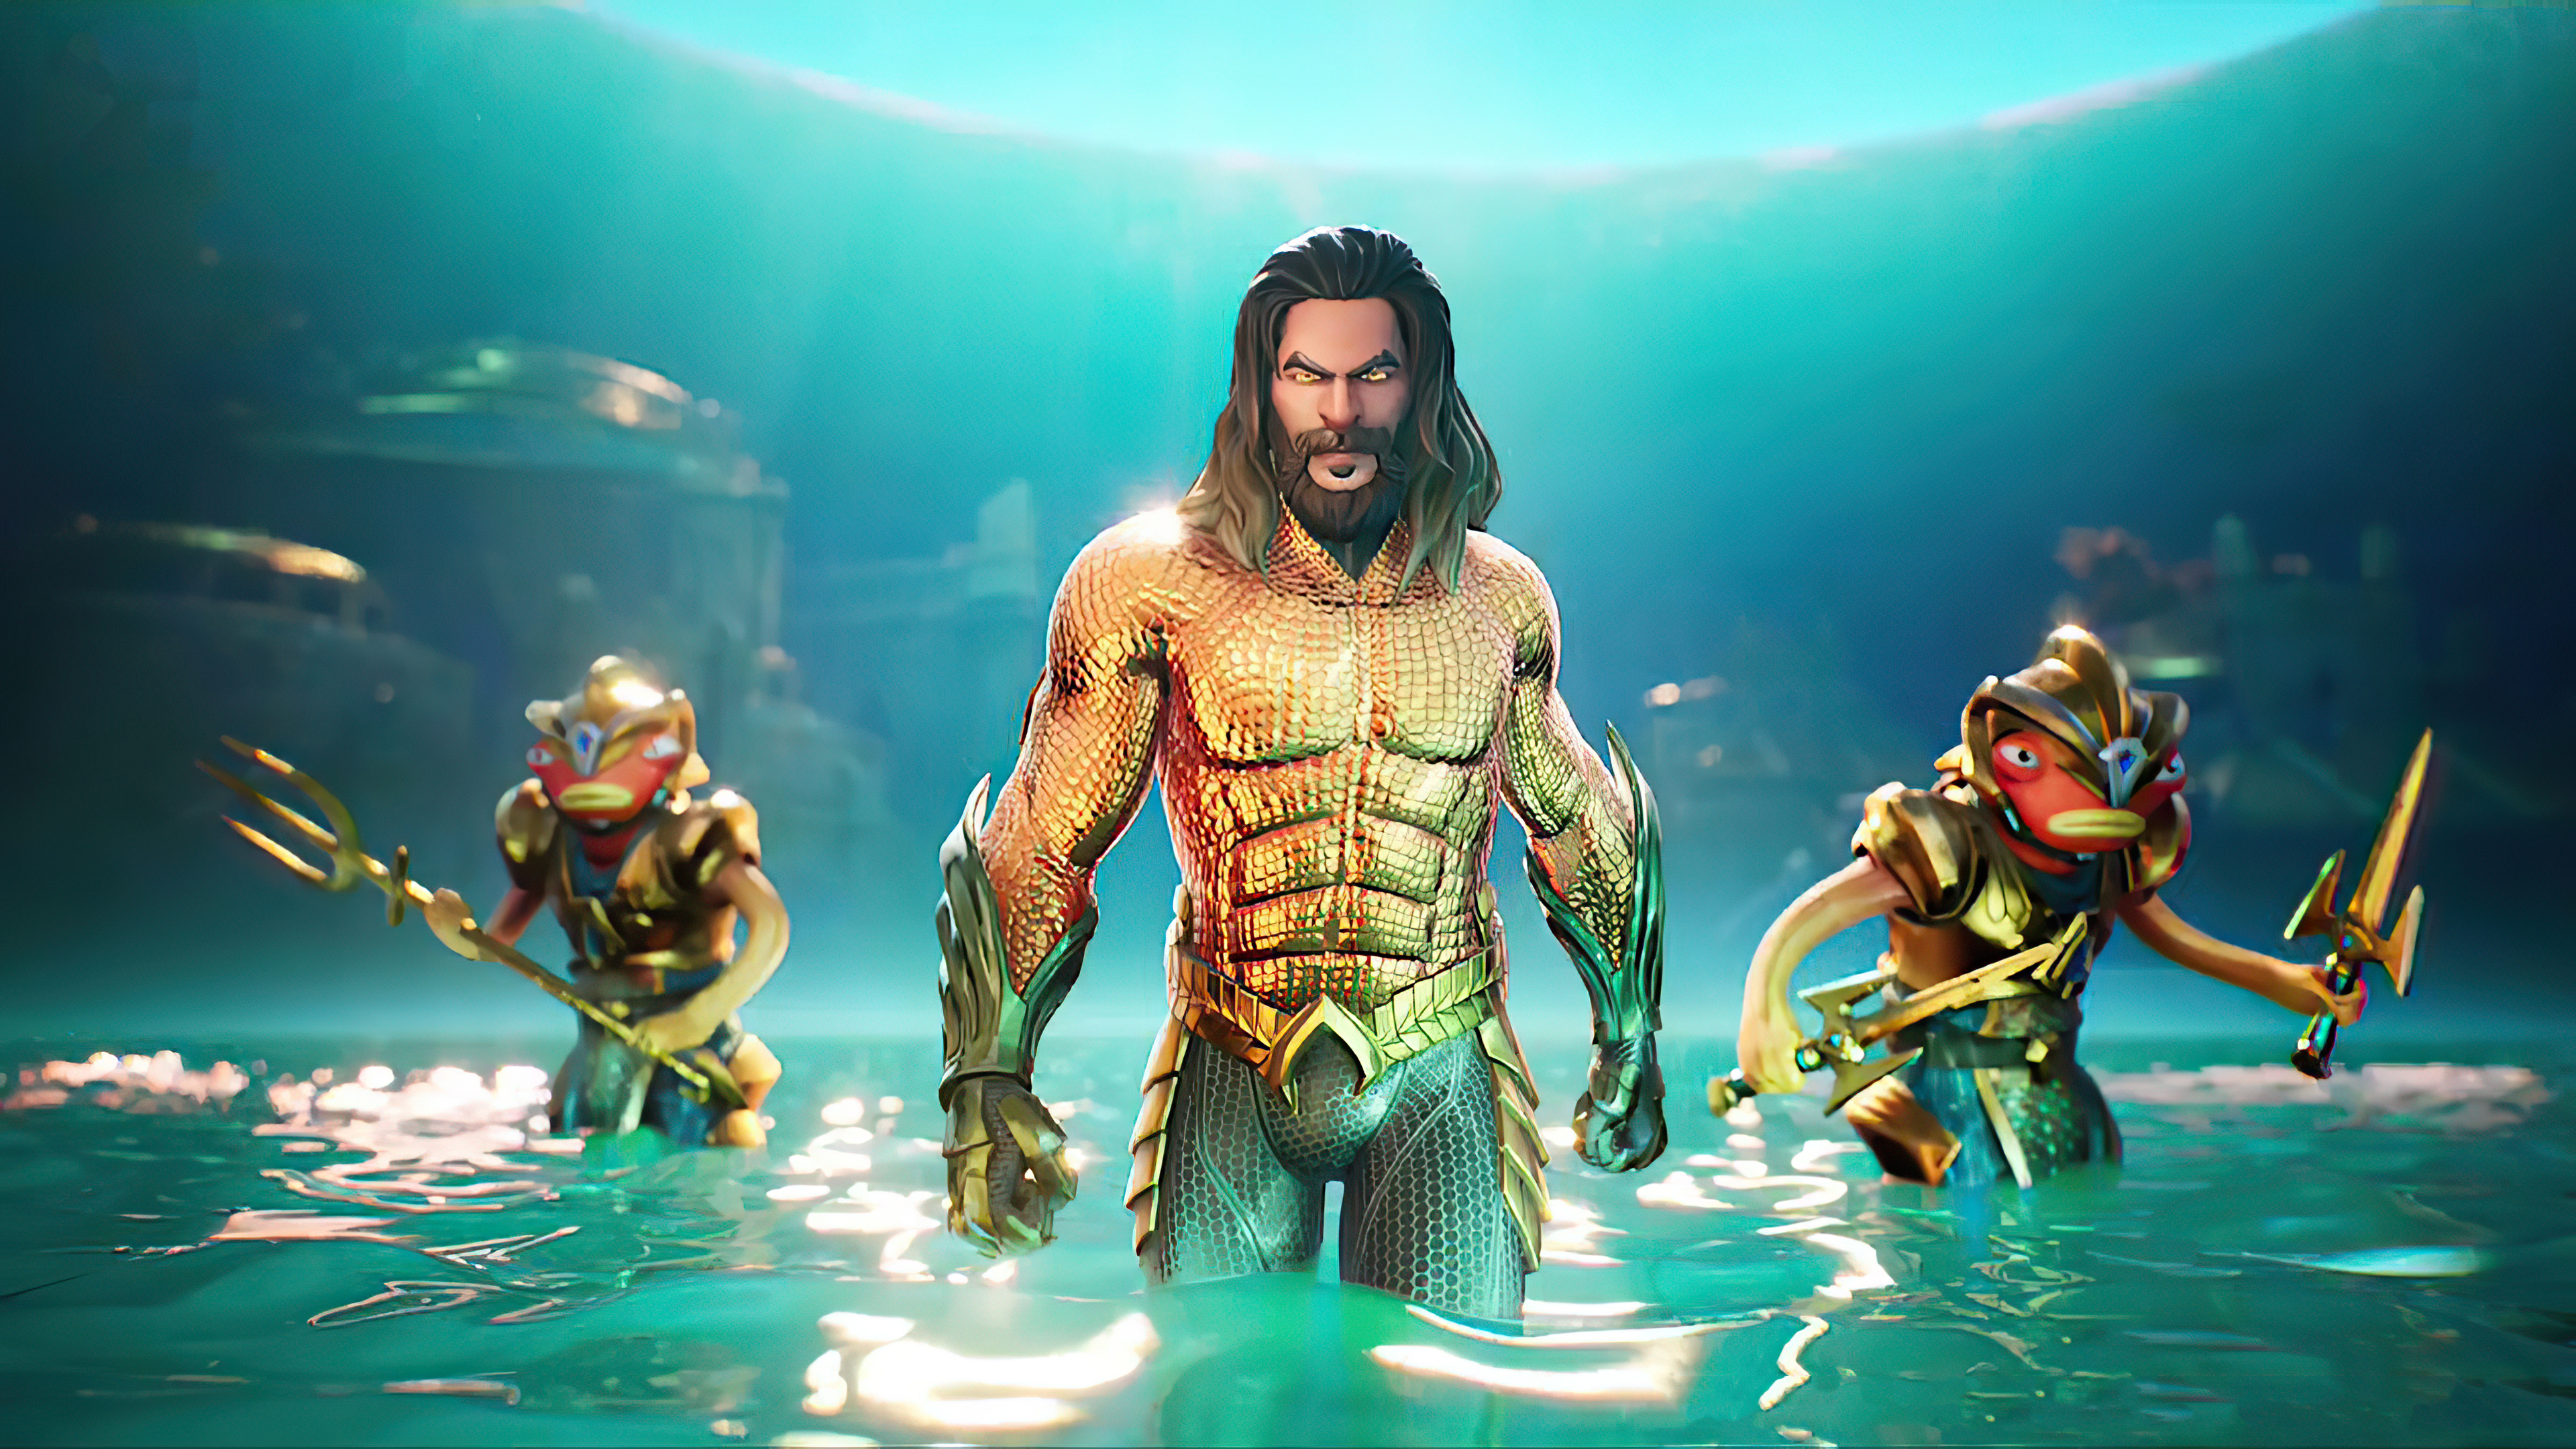 1920x1080 Aquaman In Fortnite Laptop Full Hd 1080p Hd 4k Wallpapers Images Backgrounds Photos And Pictures